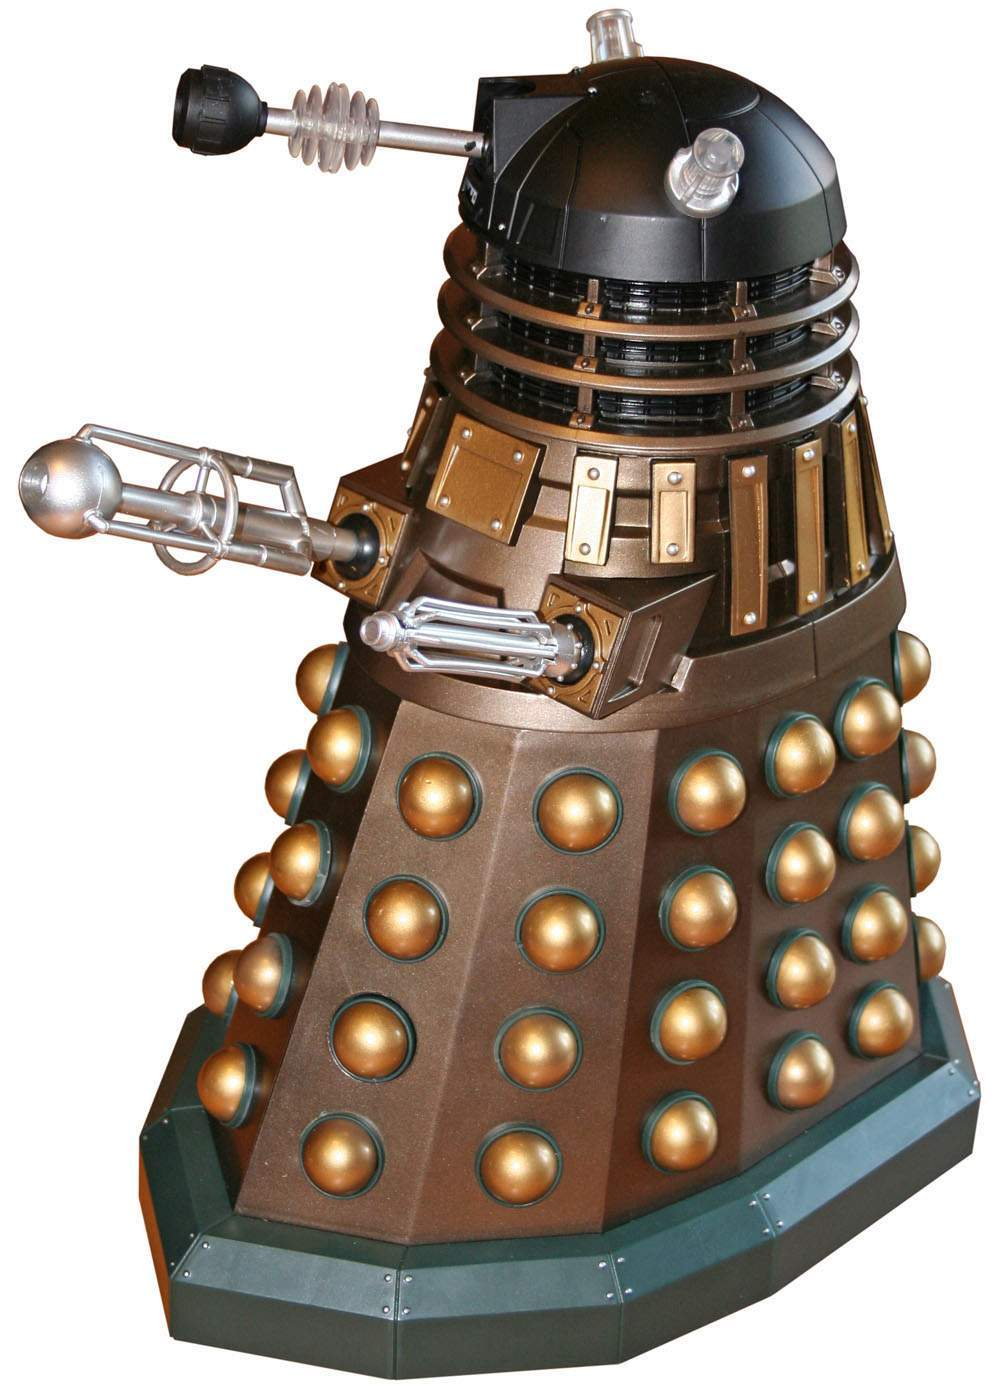 Dalek robot from dr who the old robot 39 s web site - Doctor who dalek pics ...